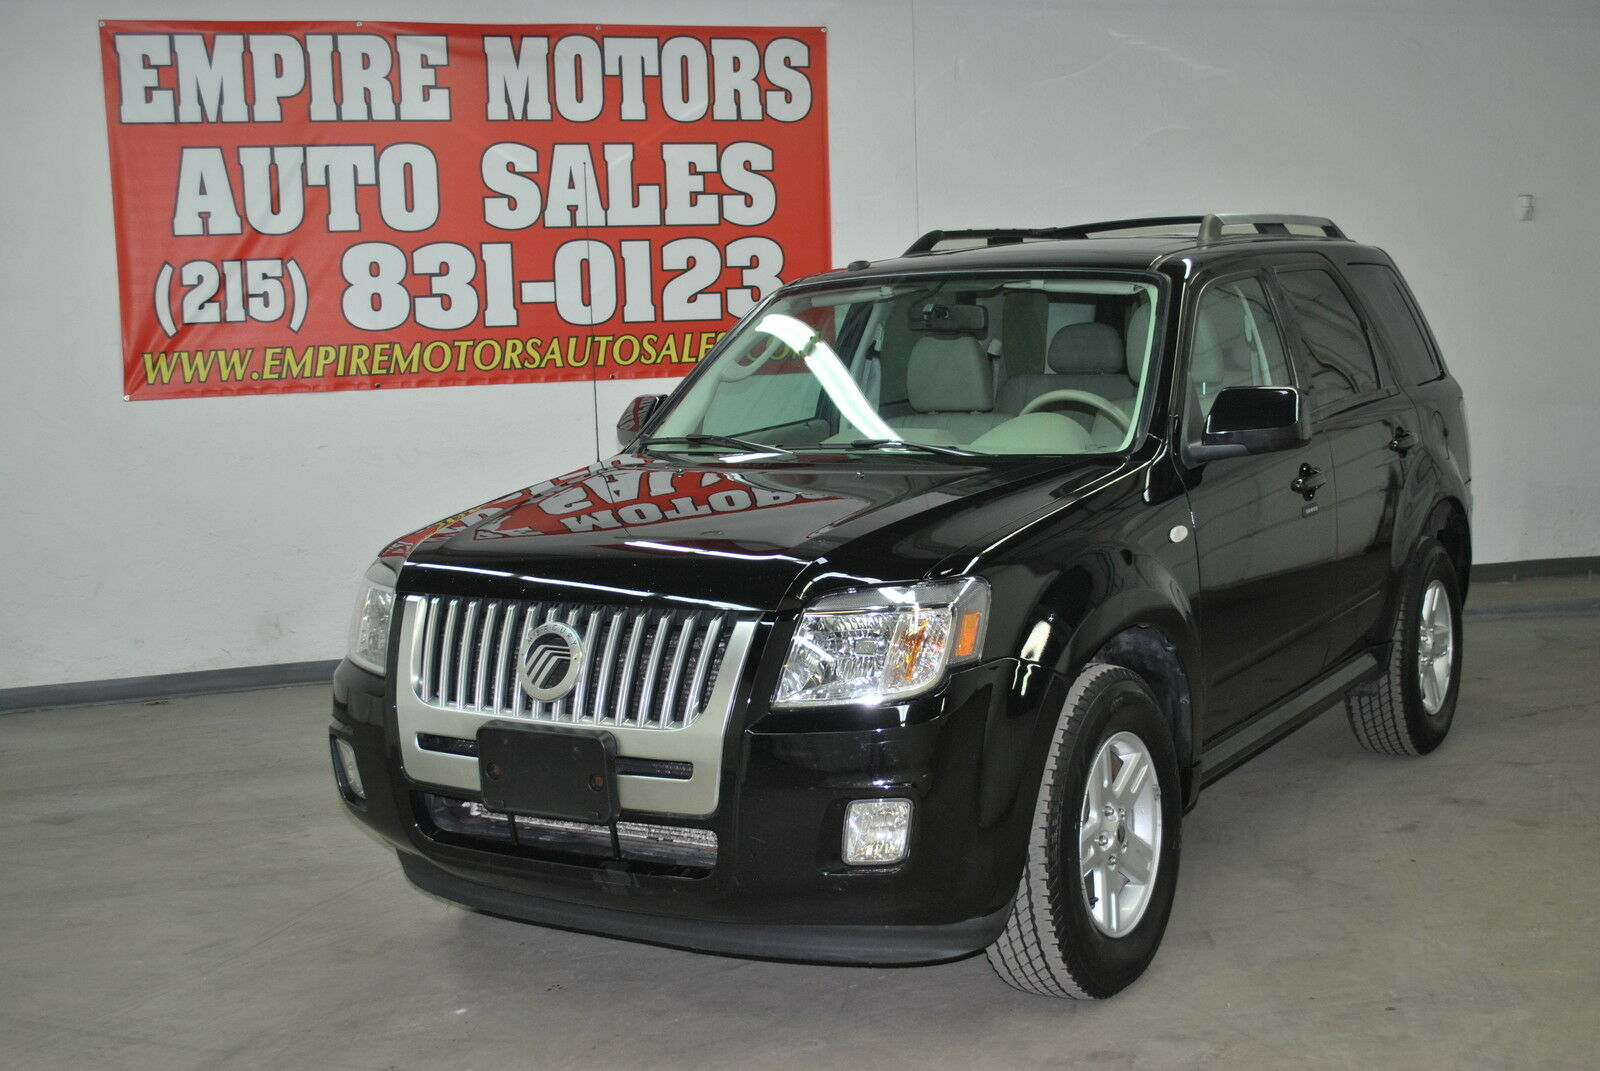 mercury mariner hybrid sport utility 4 door On empire motors auto sales llc